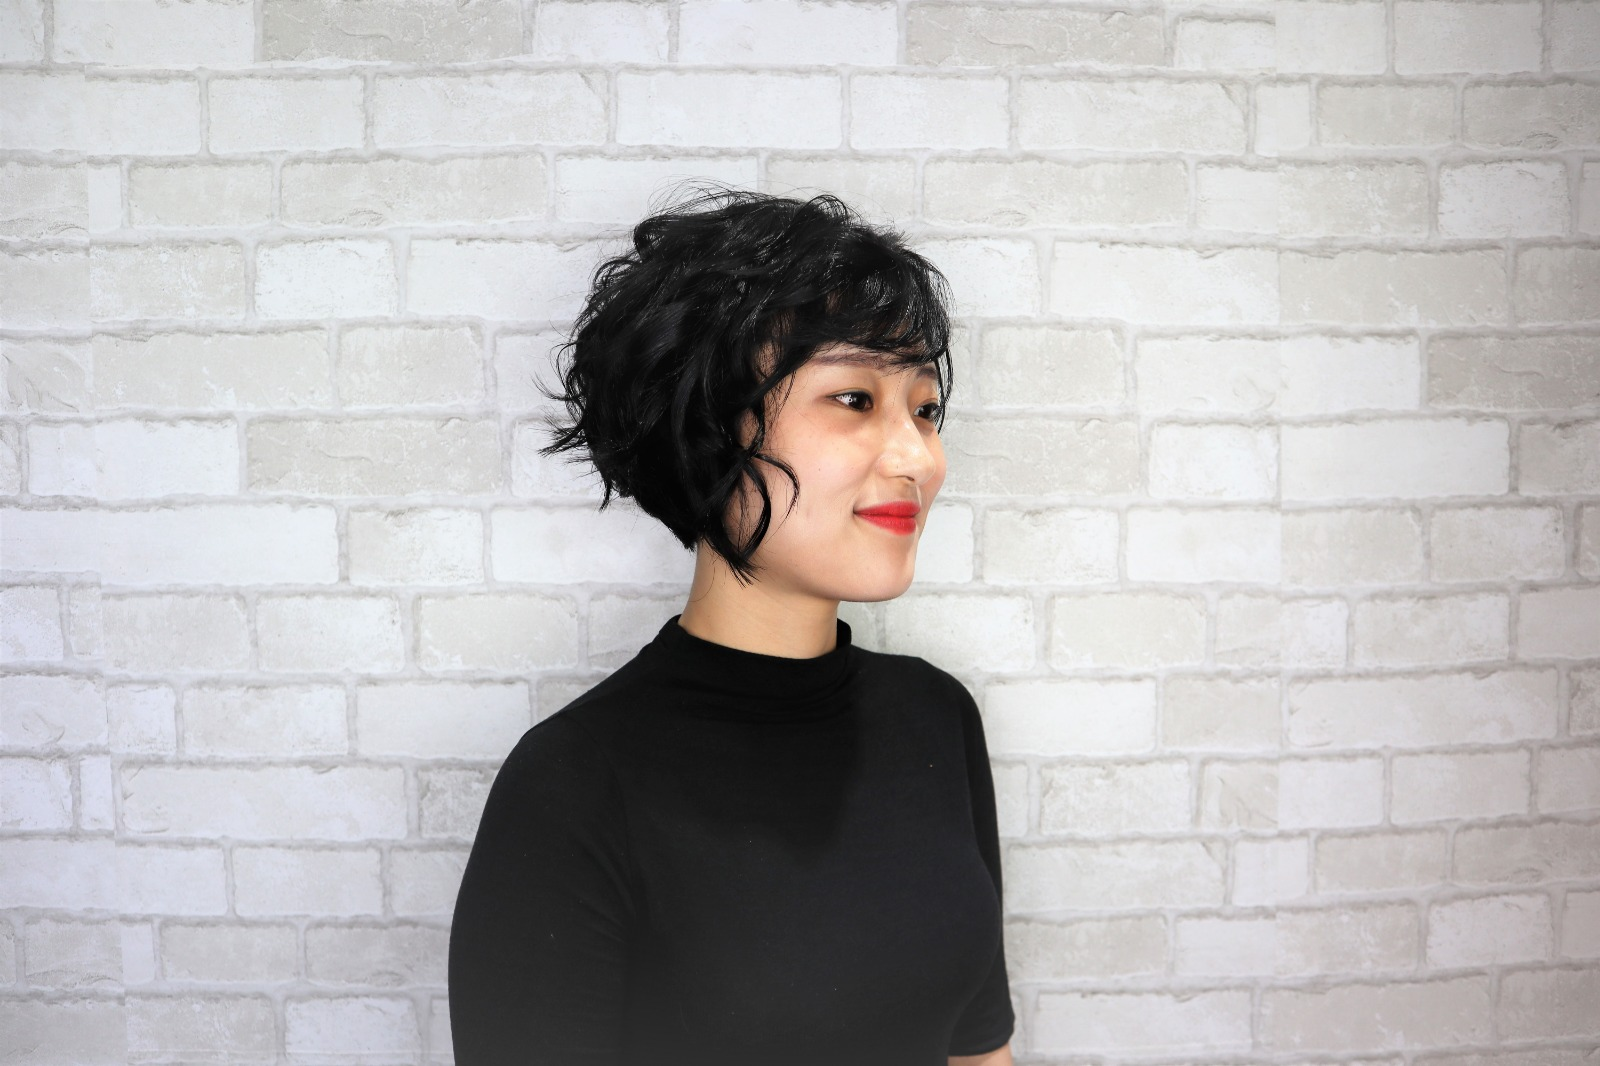 Korean Trendy Short Hair Cut and Curly Perm by Style NA